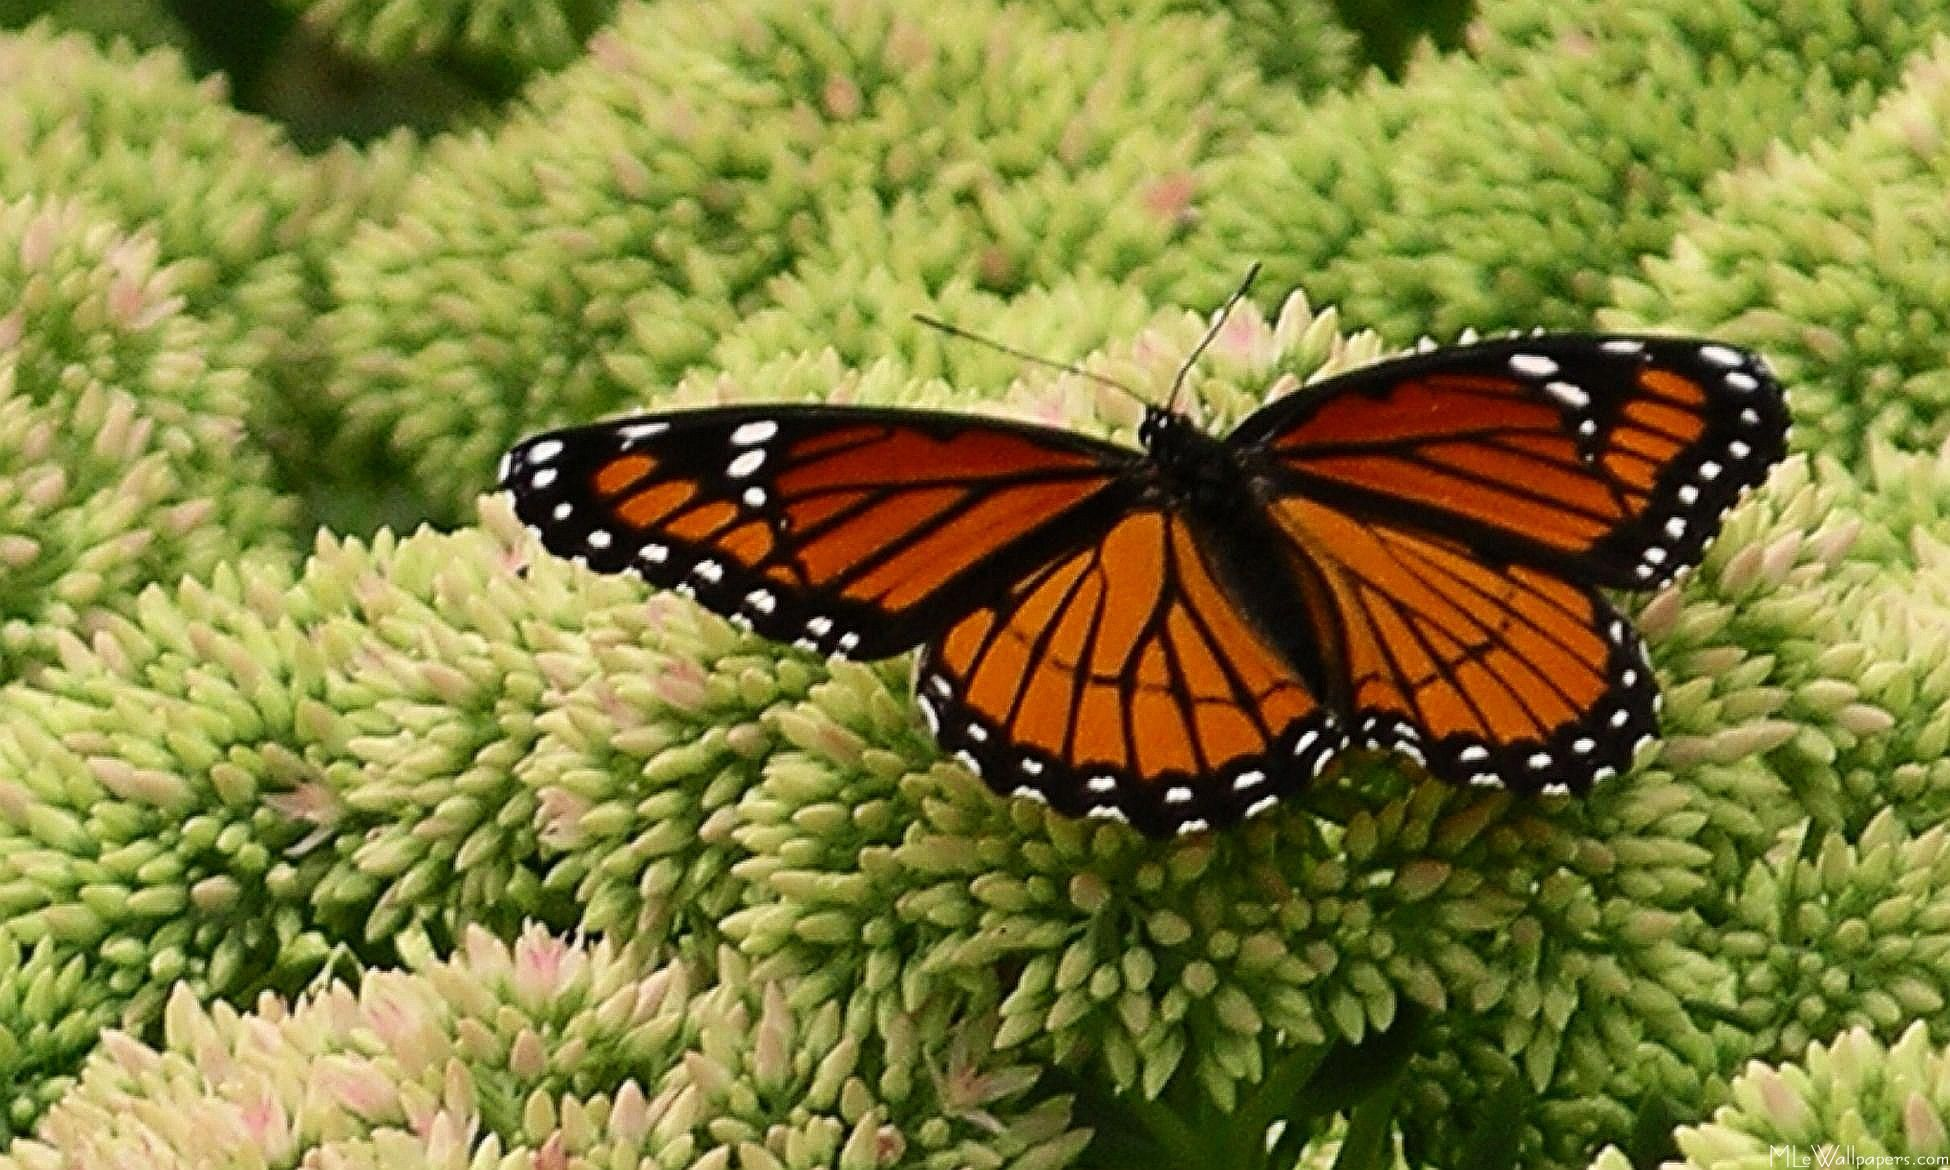 MLeWallpapers.com - Viceroy Butterfly